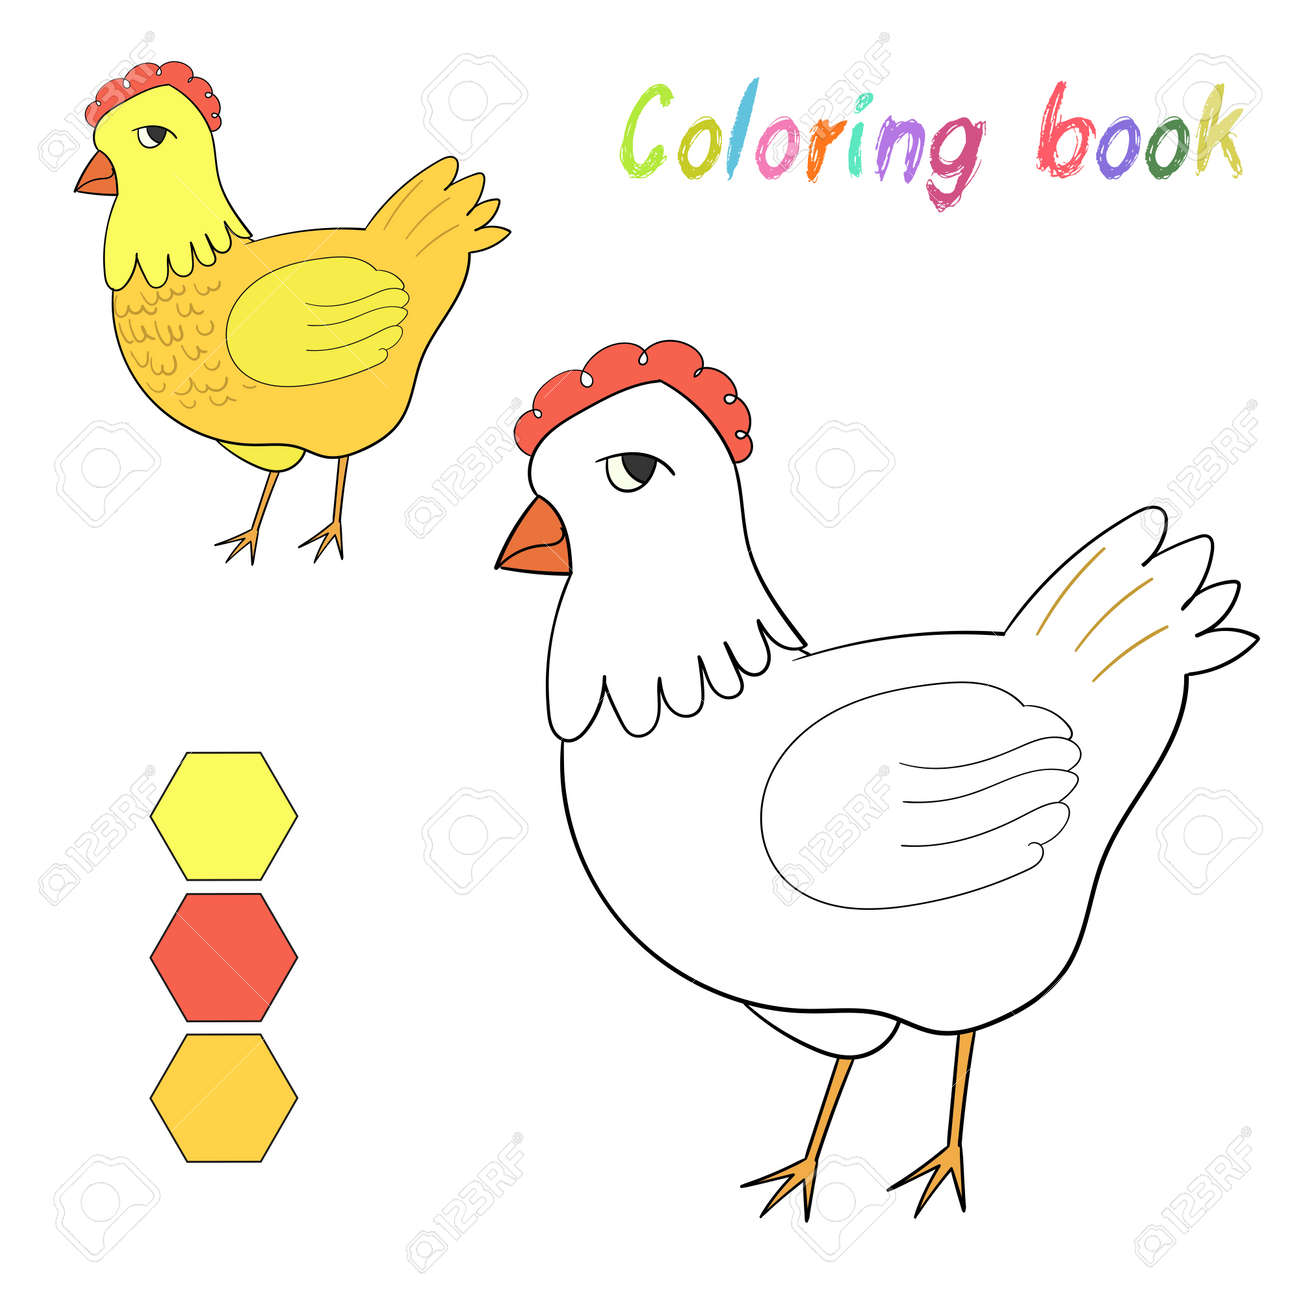 Coloring Book Chicken Kids Layout For Game Doodle Hand Drawn Cartoon Vector Illustration Stock